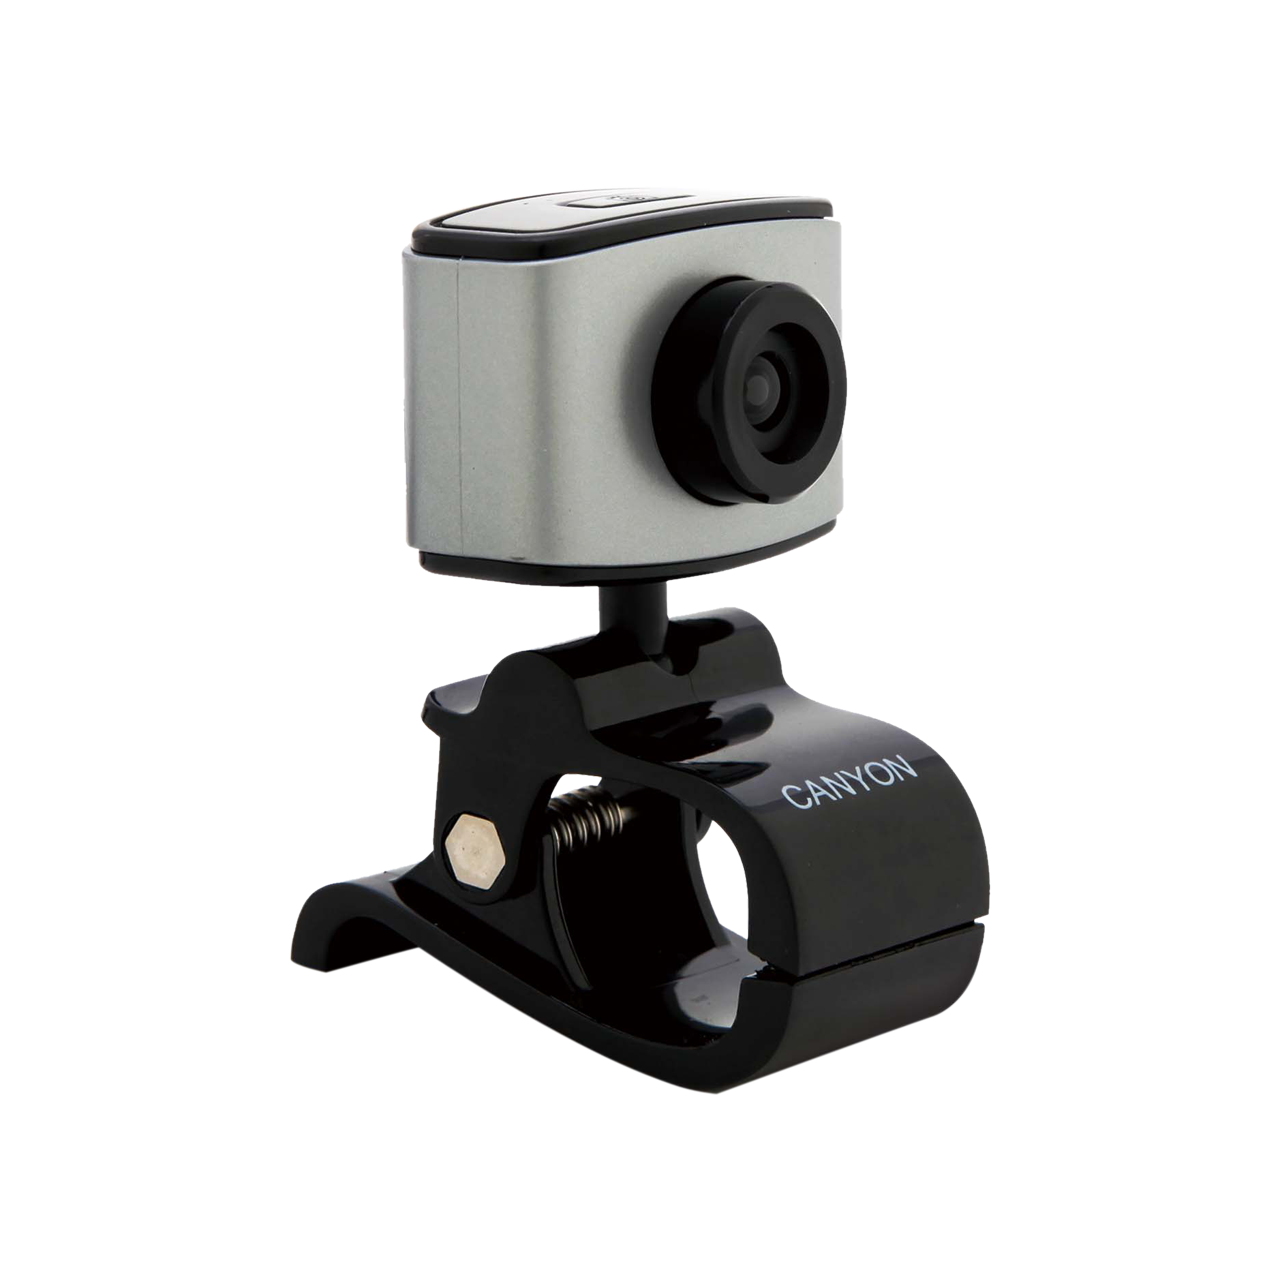 canyon webcam driver free download